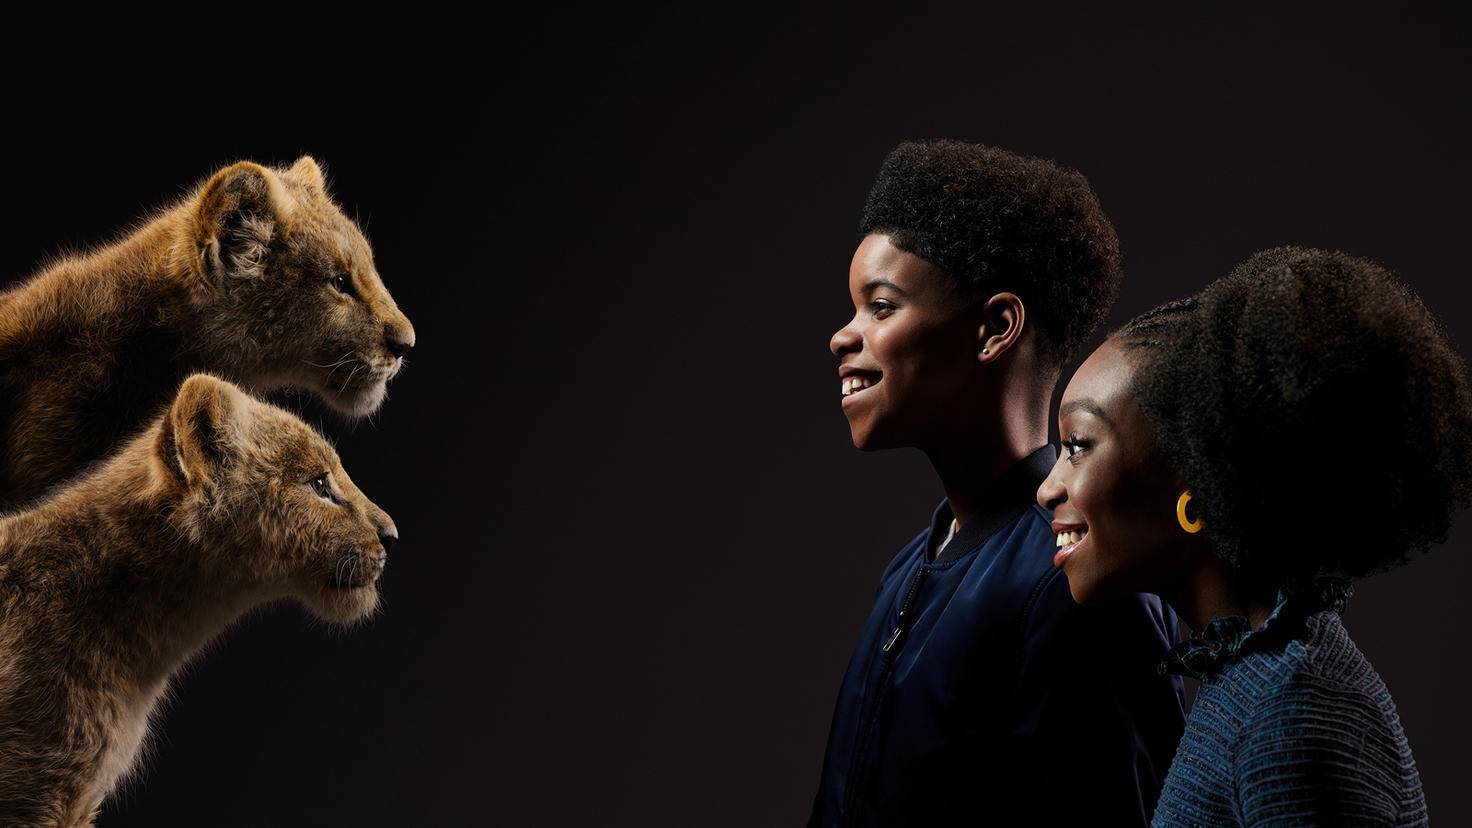 Sweet: The young Simba is spoken by JD McCrary, Shahadi Wright Joseph speaks the young Nala.